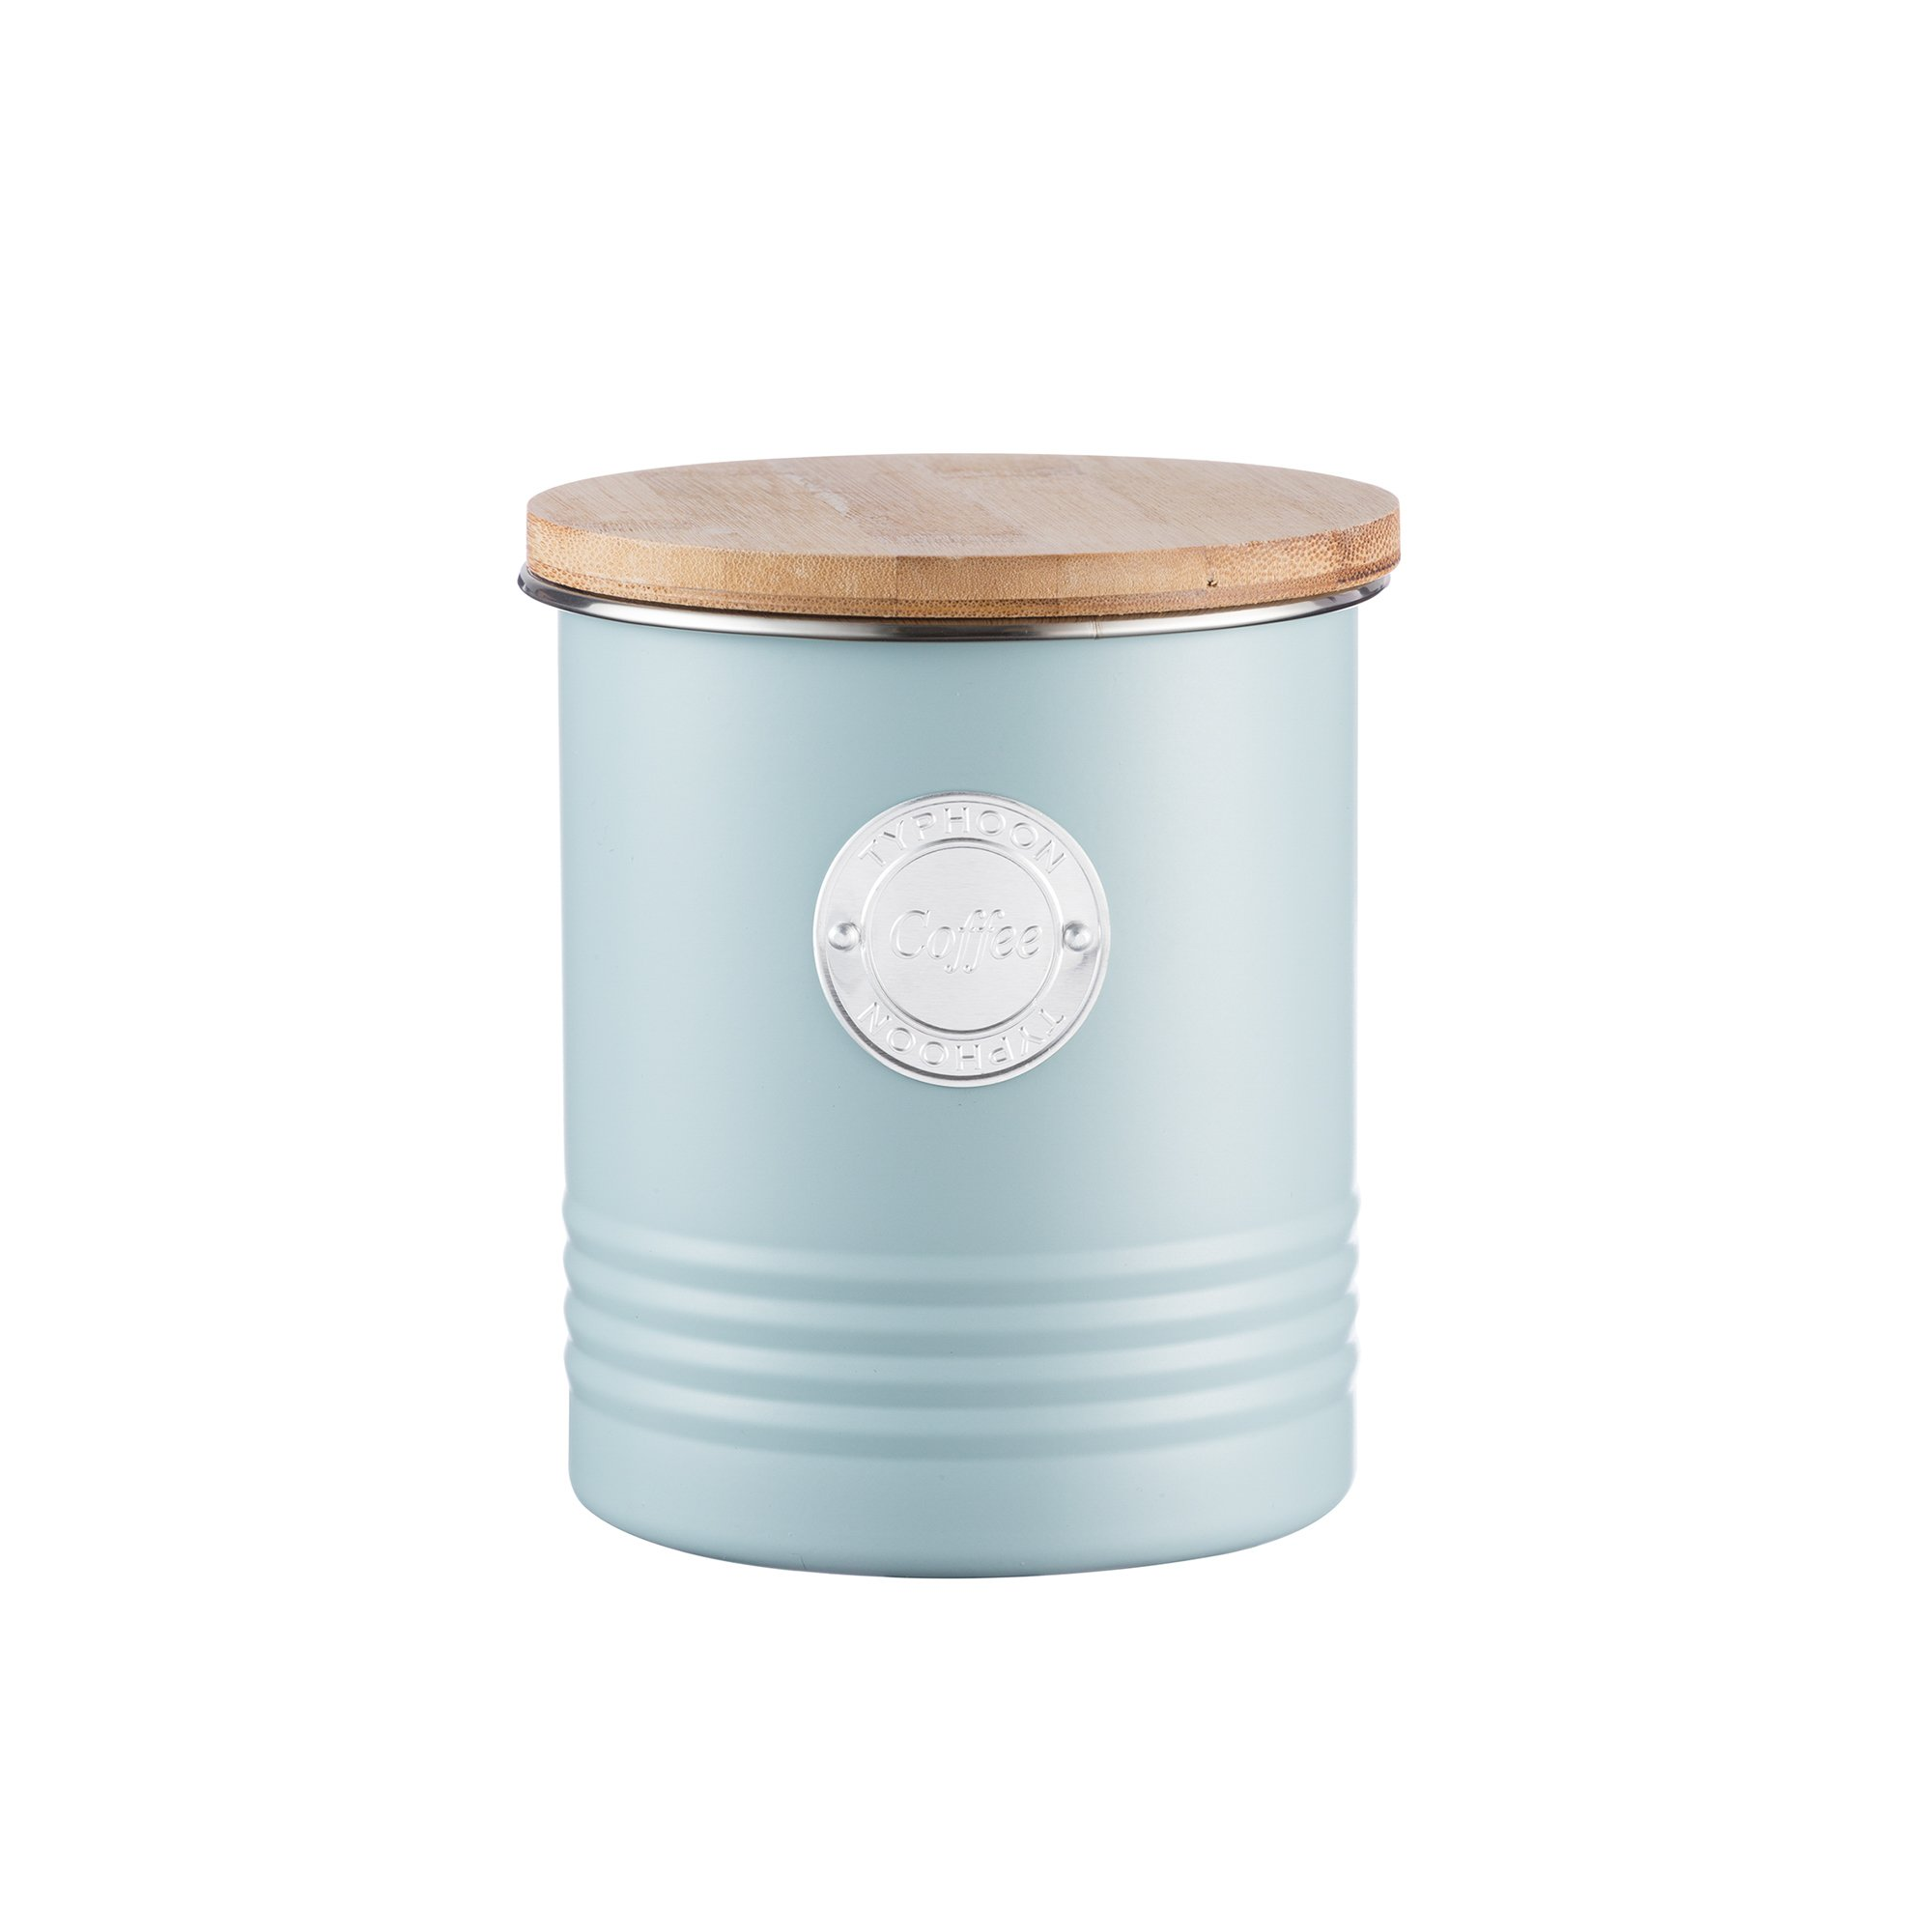 Typhoon Living Blue Coffee Canister, Airtight Bamboo Lid, Durable Carbon Steel Design with a Hard-wearing Matte Coating, 33-3/4-Fluid Ounces